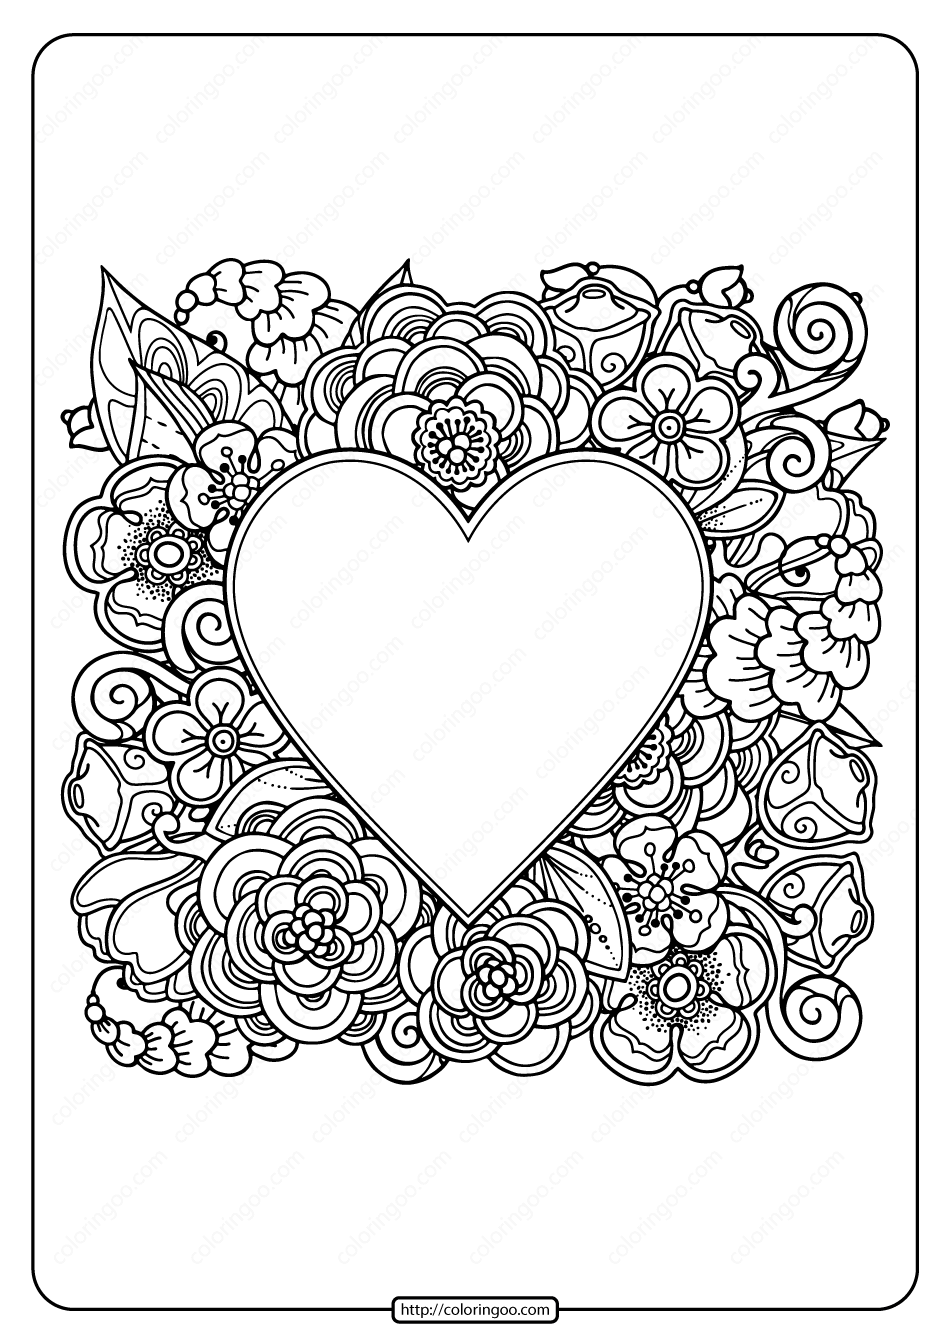 coloring pictures of flowers and hearts heart and flowers coloring play free coloring game online coloring pictures and hearts of flowers